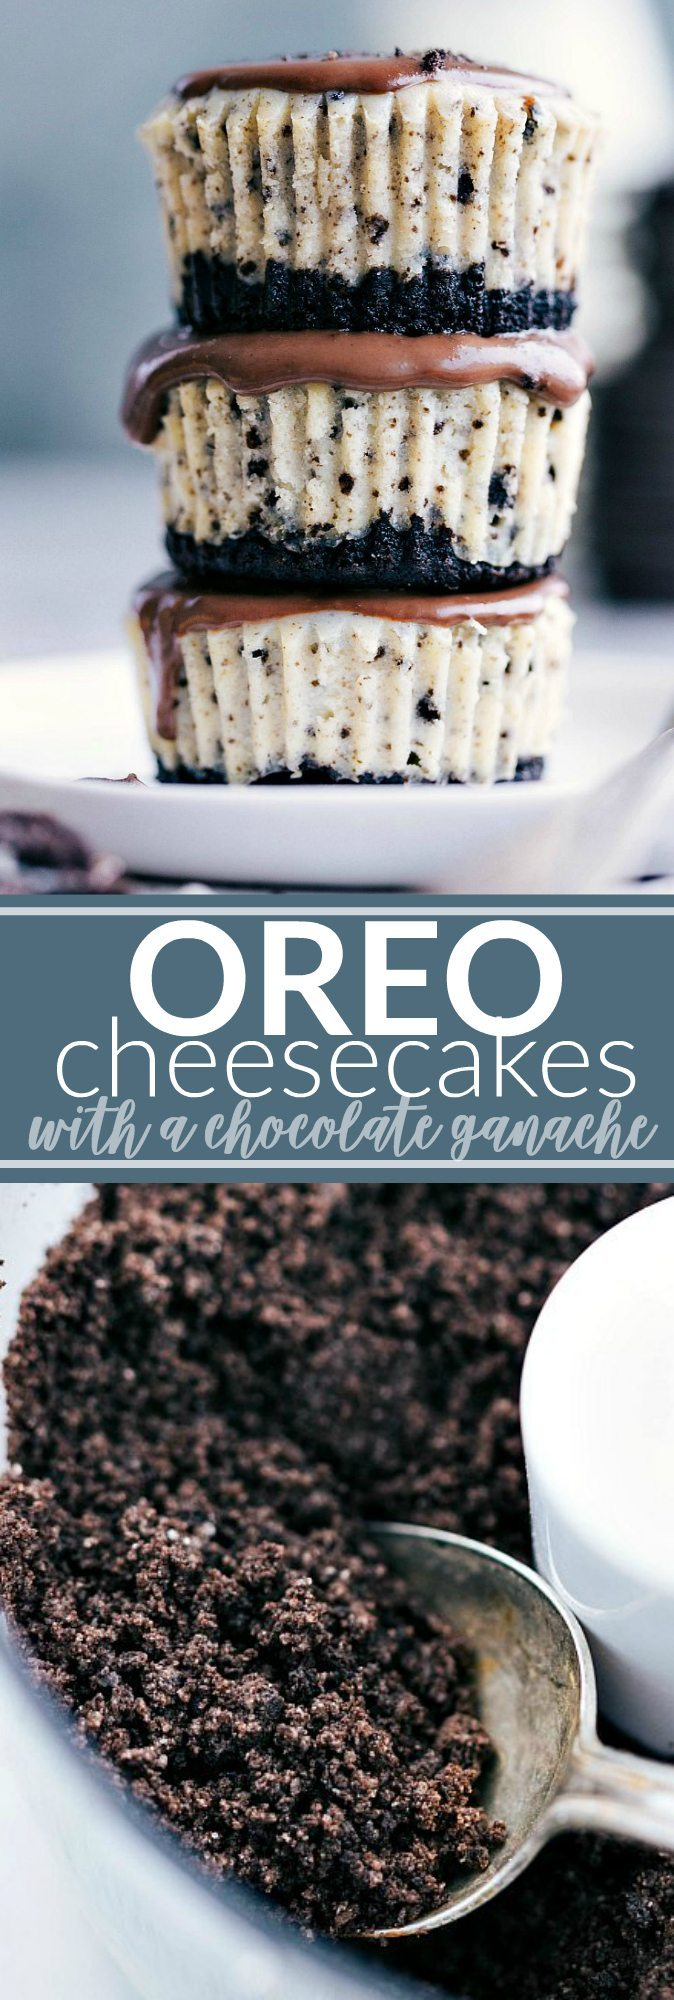 The ultimate BEST EVER miniature oreo cheesecakes with an easy chocolate ganache. via chelseasmessyapron.com #mini #oreo #cheesecake #cheesecakes #dessert #easy #tips #kidfriendly #sweet #cookie #chocolate #ganache